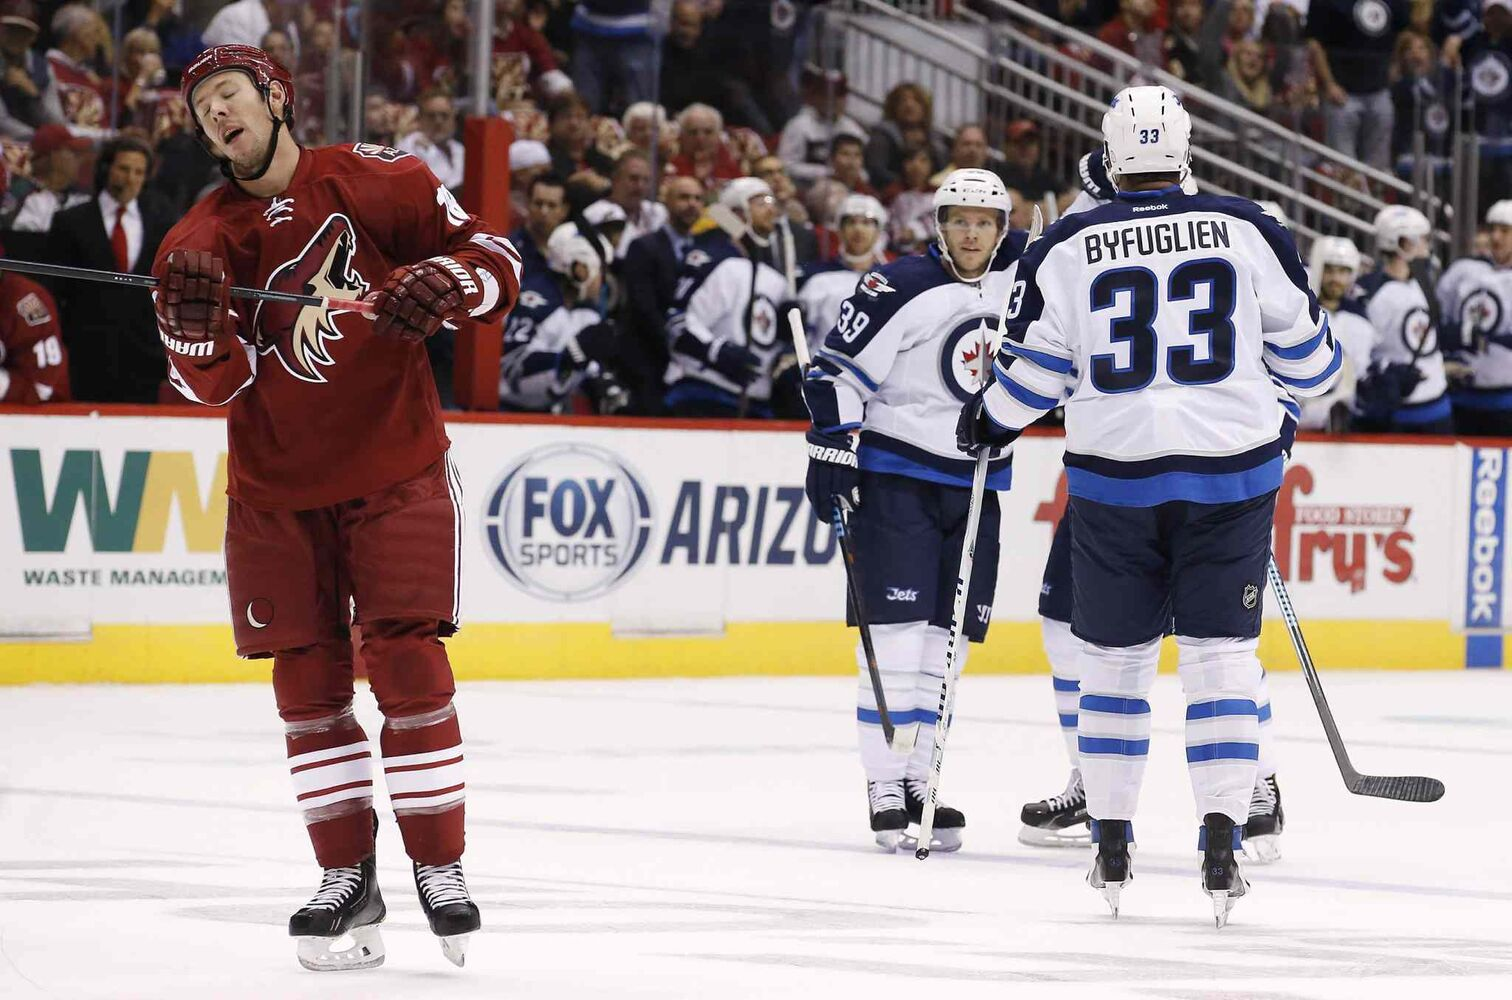 Winnipeg Jets' Dustin Byfuglien (33) and Toby Enstrom (39), of Sweden, celebrate a goal by teammate Blake Wheeler as Arizona Coyotes' David Moss, left, skates dejectedly away during the first period of an NHL hockey game Thursday. (Ross D. Franklin / The Associated Press)